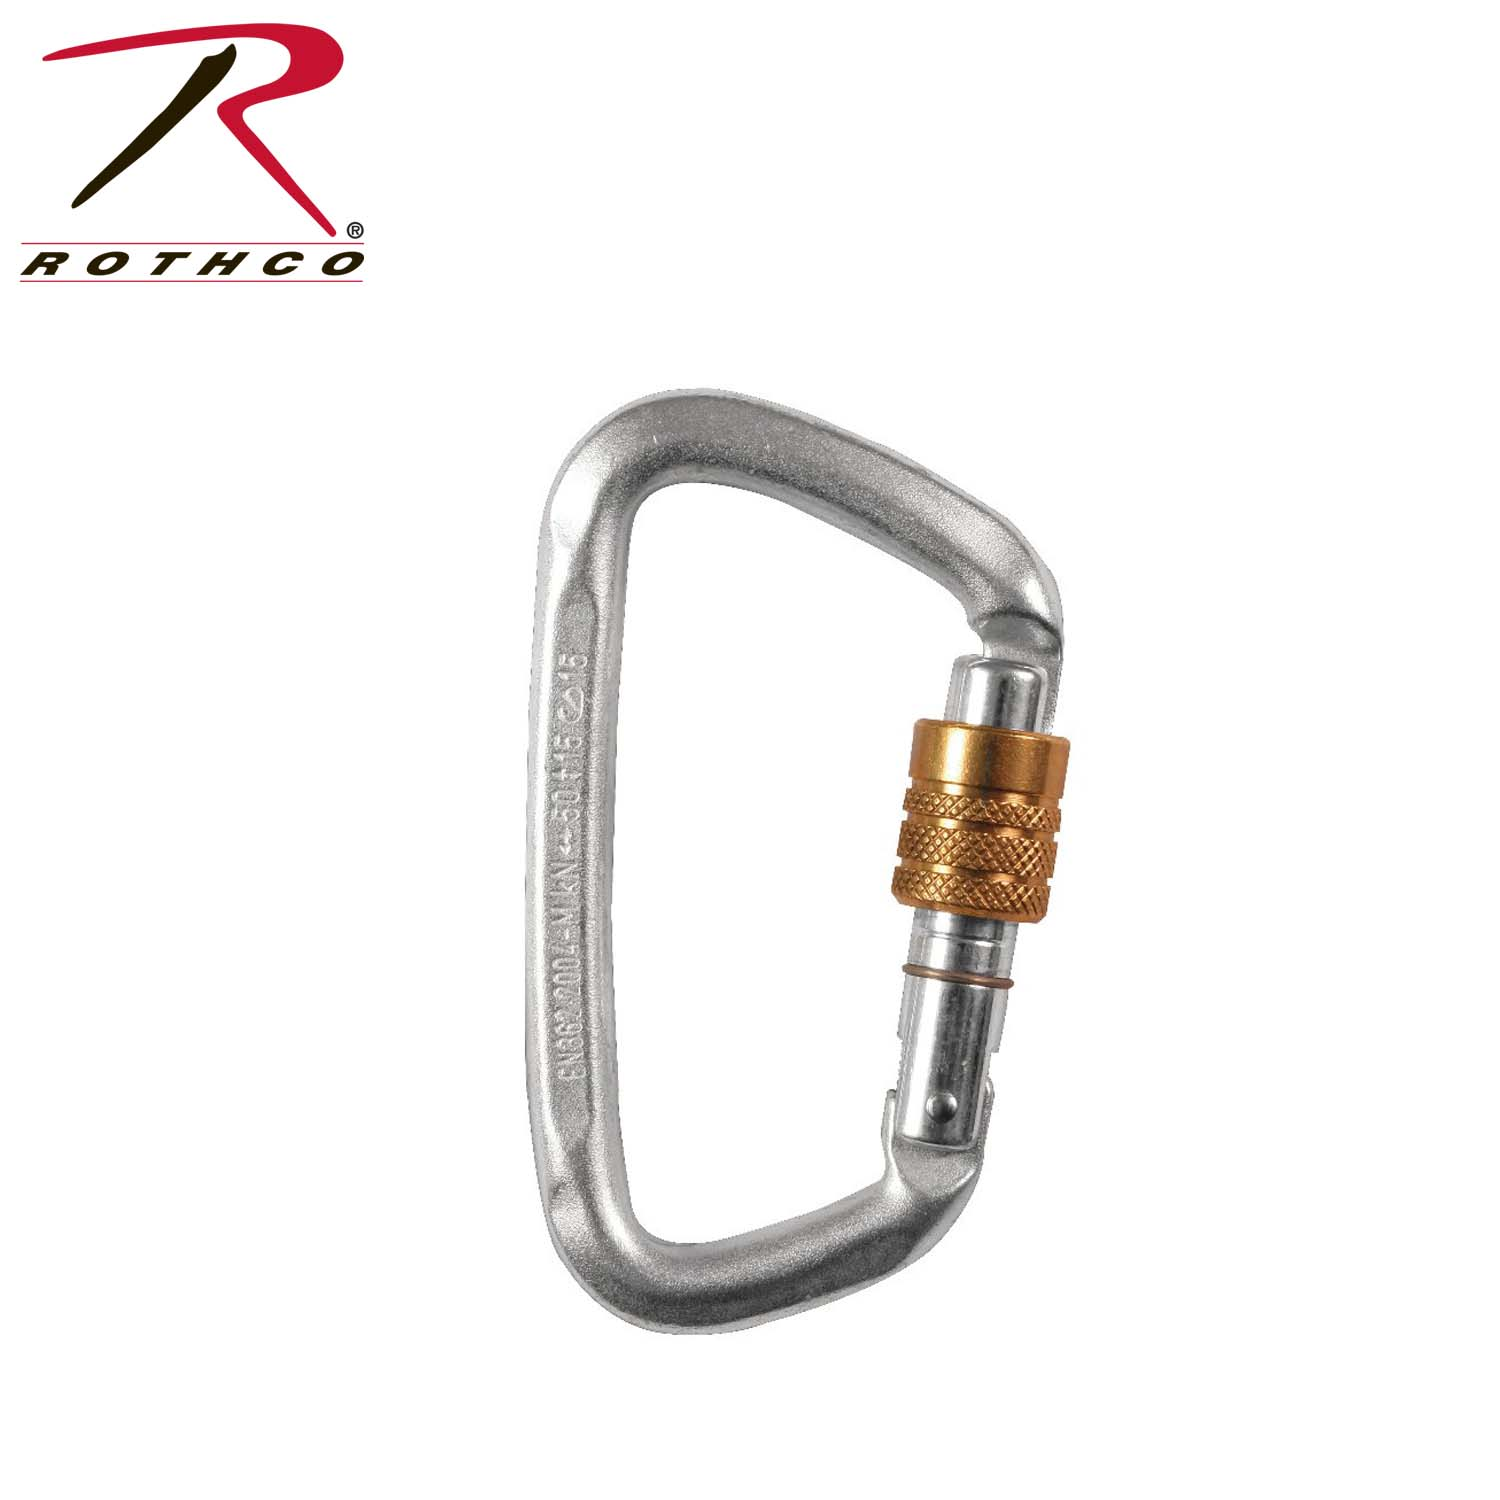 Rothco Hard Steel Modified D Key Screw Gate Carabiner